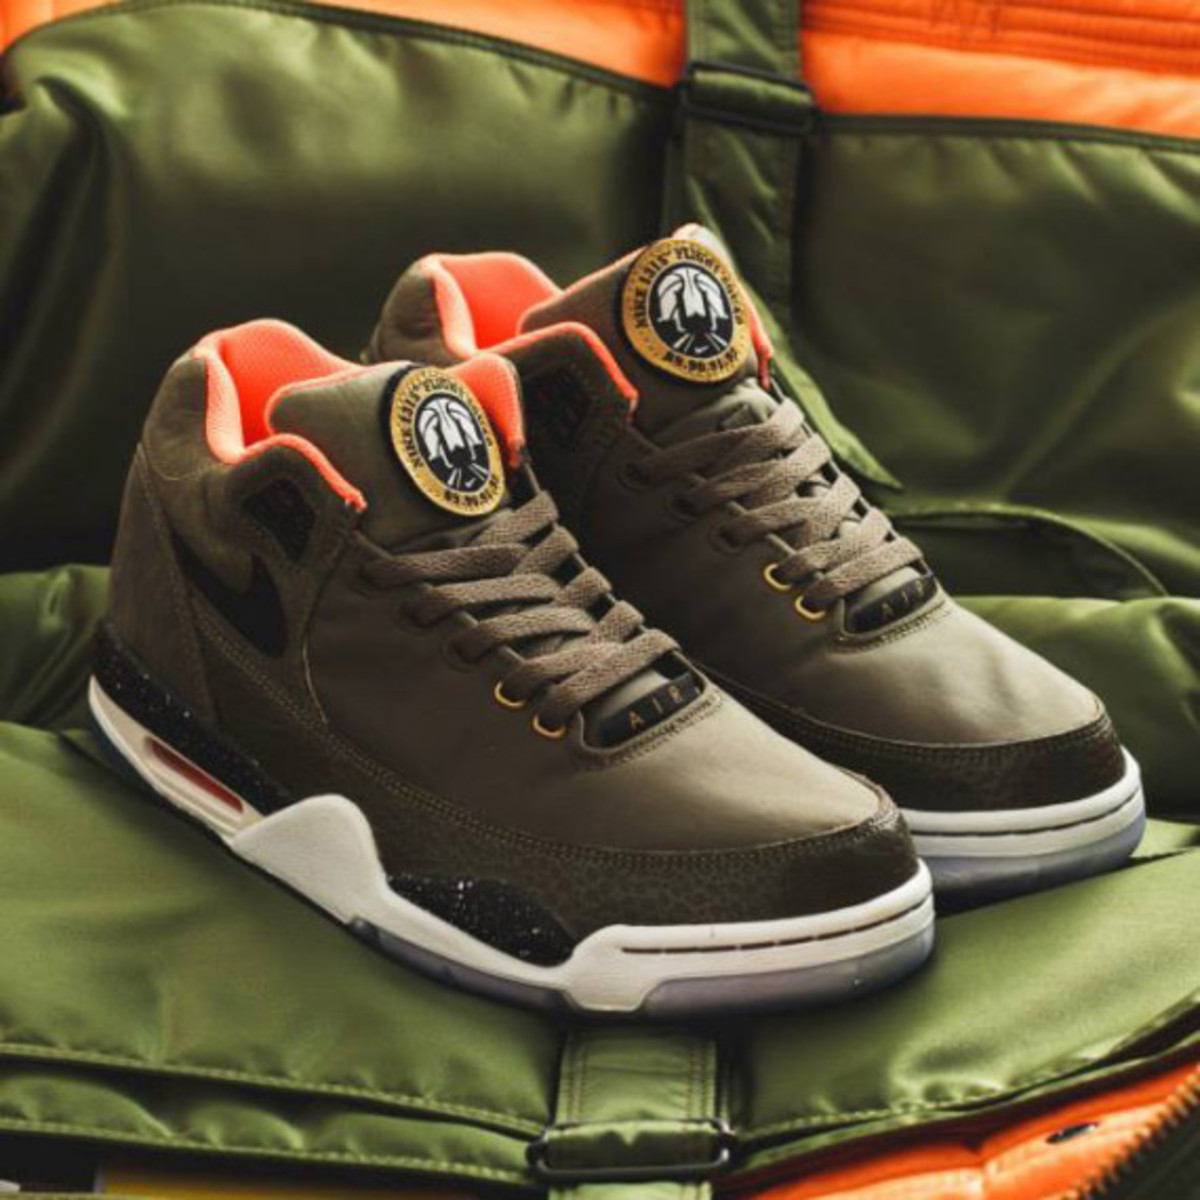 Nike Air Flight Squad Premium QS - Medium Olive/Orange-Black - 0